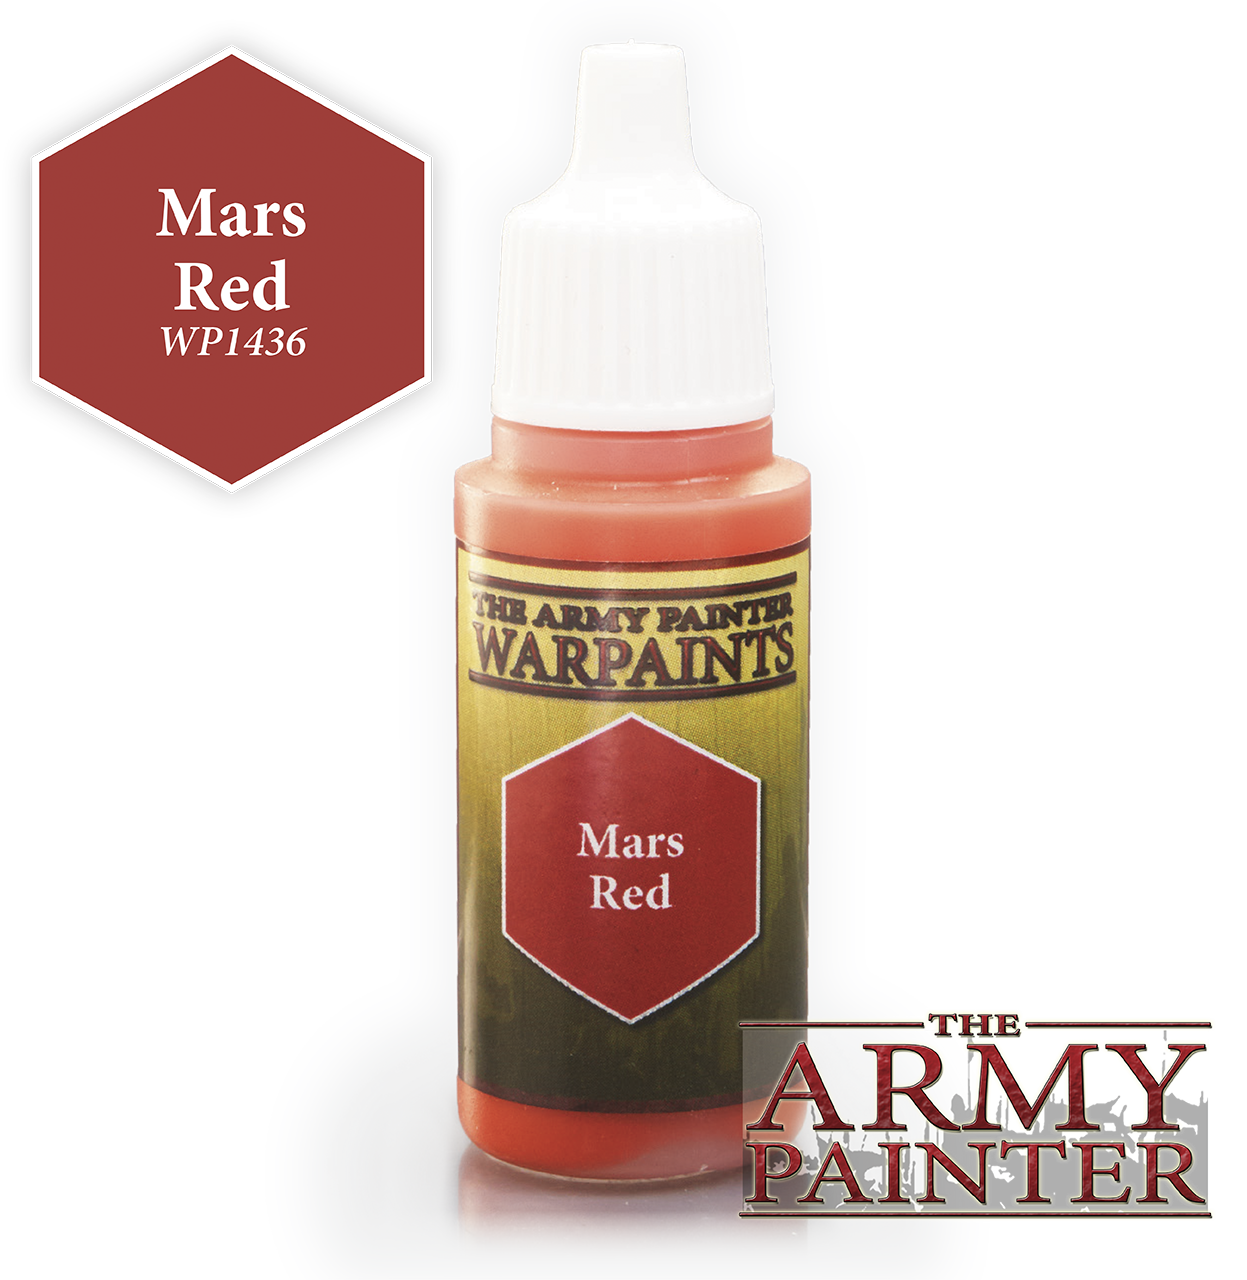 Mars Red - Army Painter Warpaints